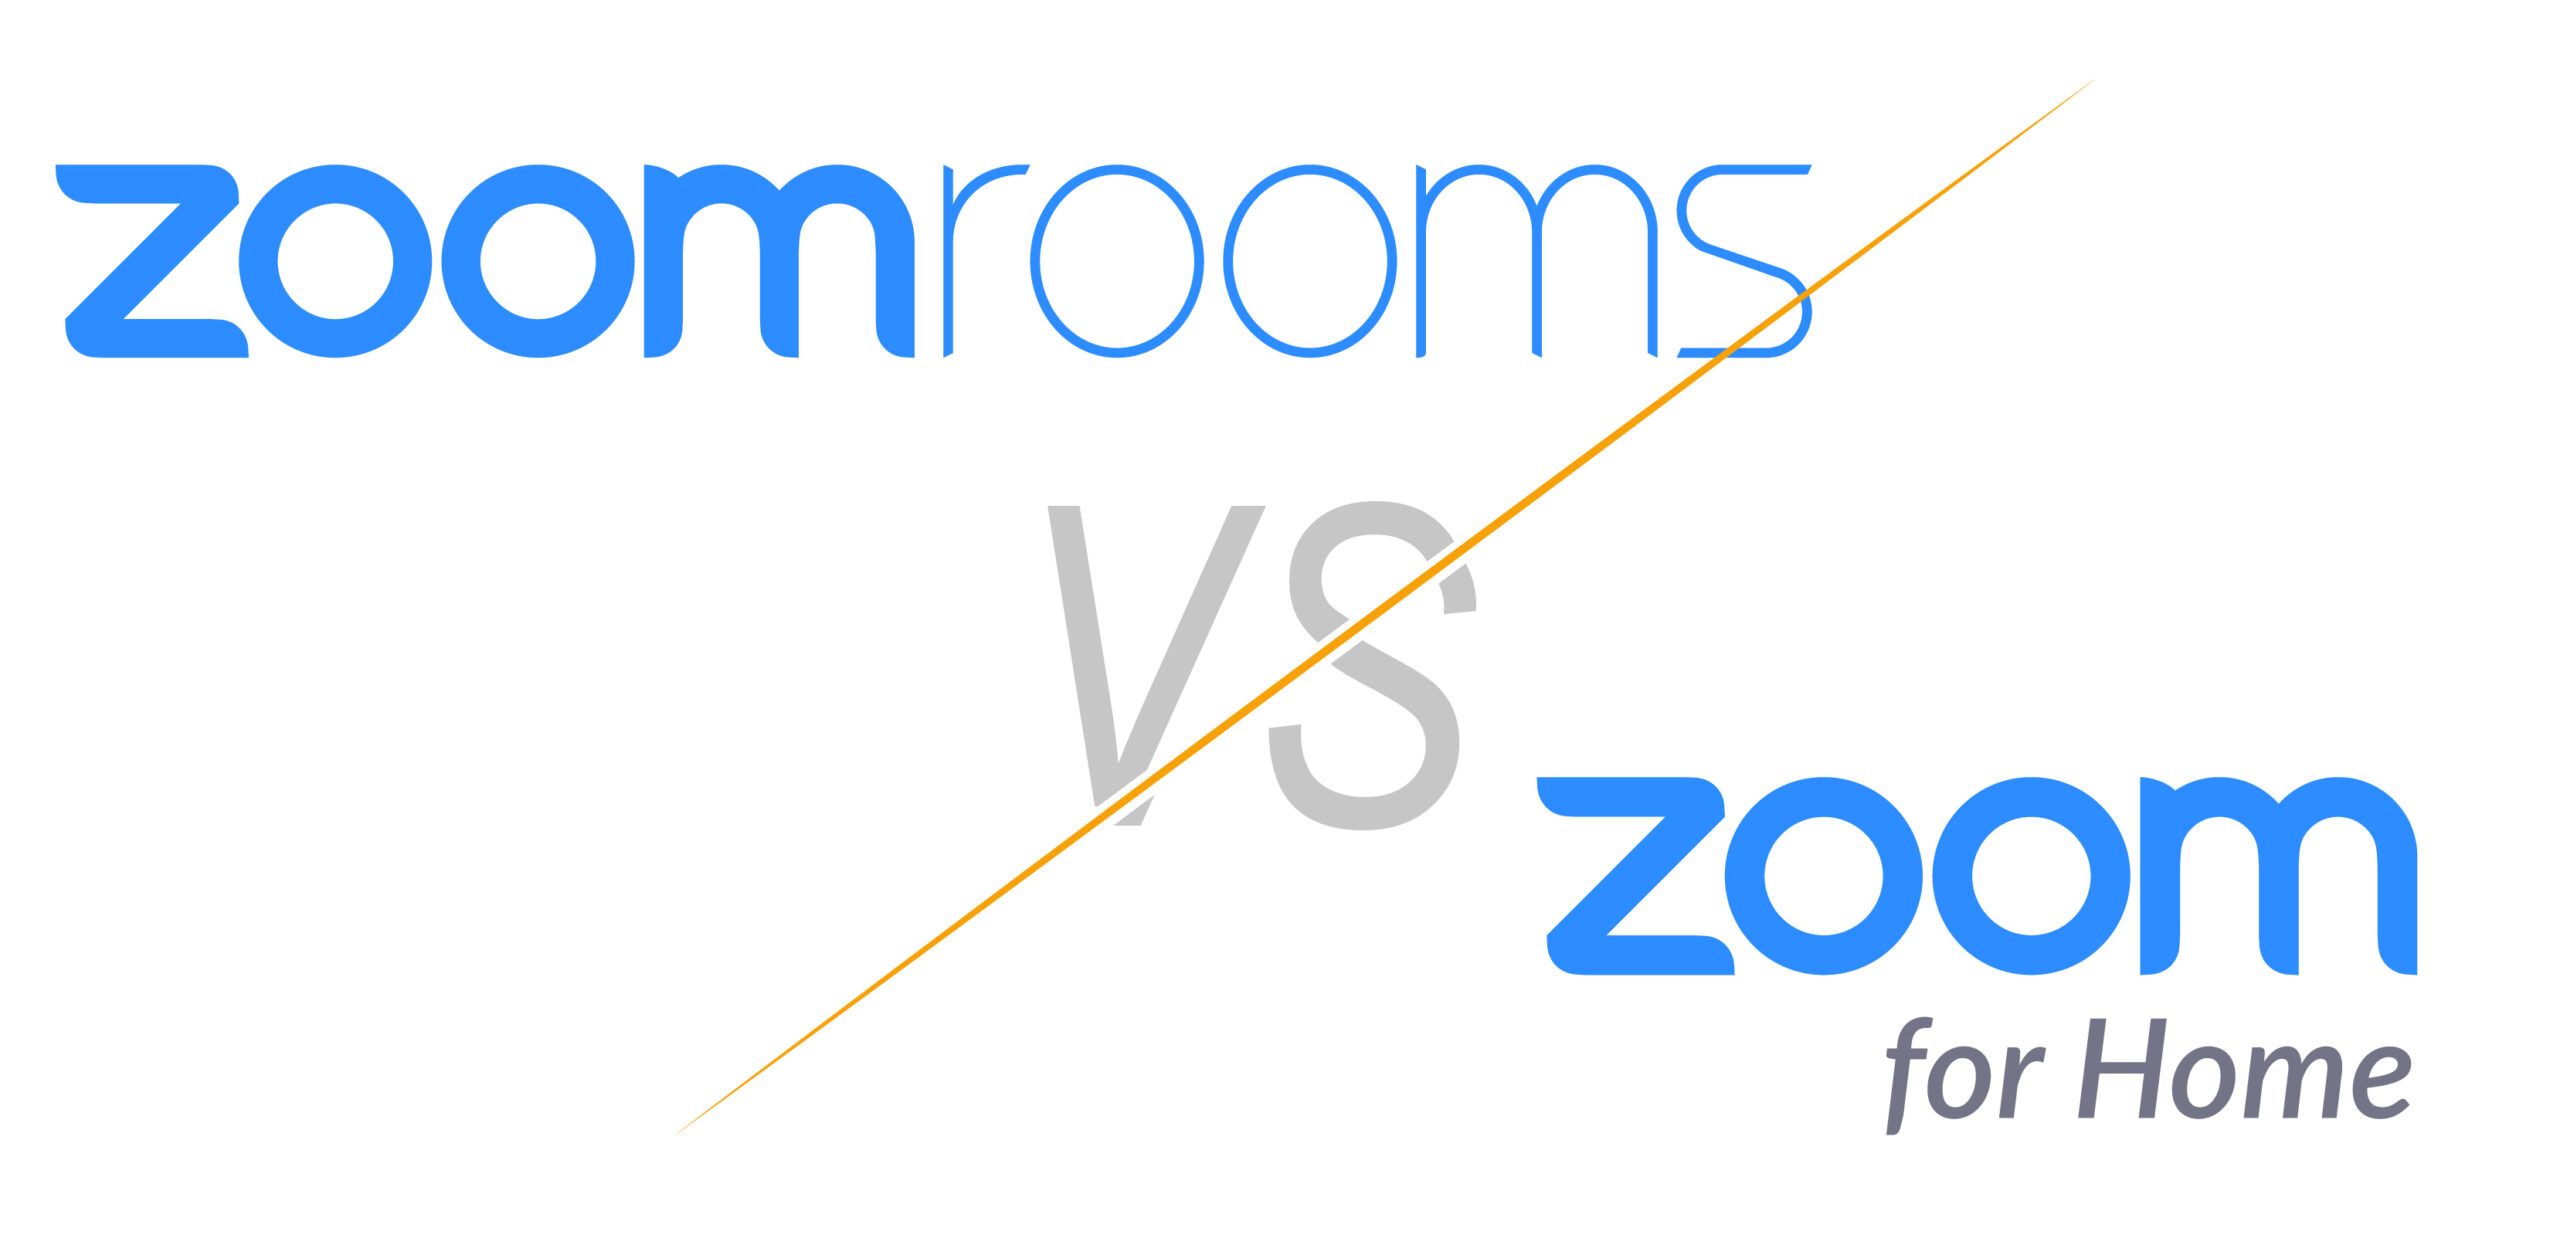 Zoom Room vs Zoom For Home